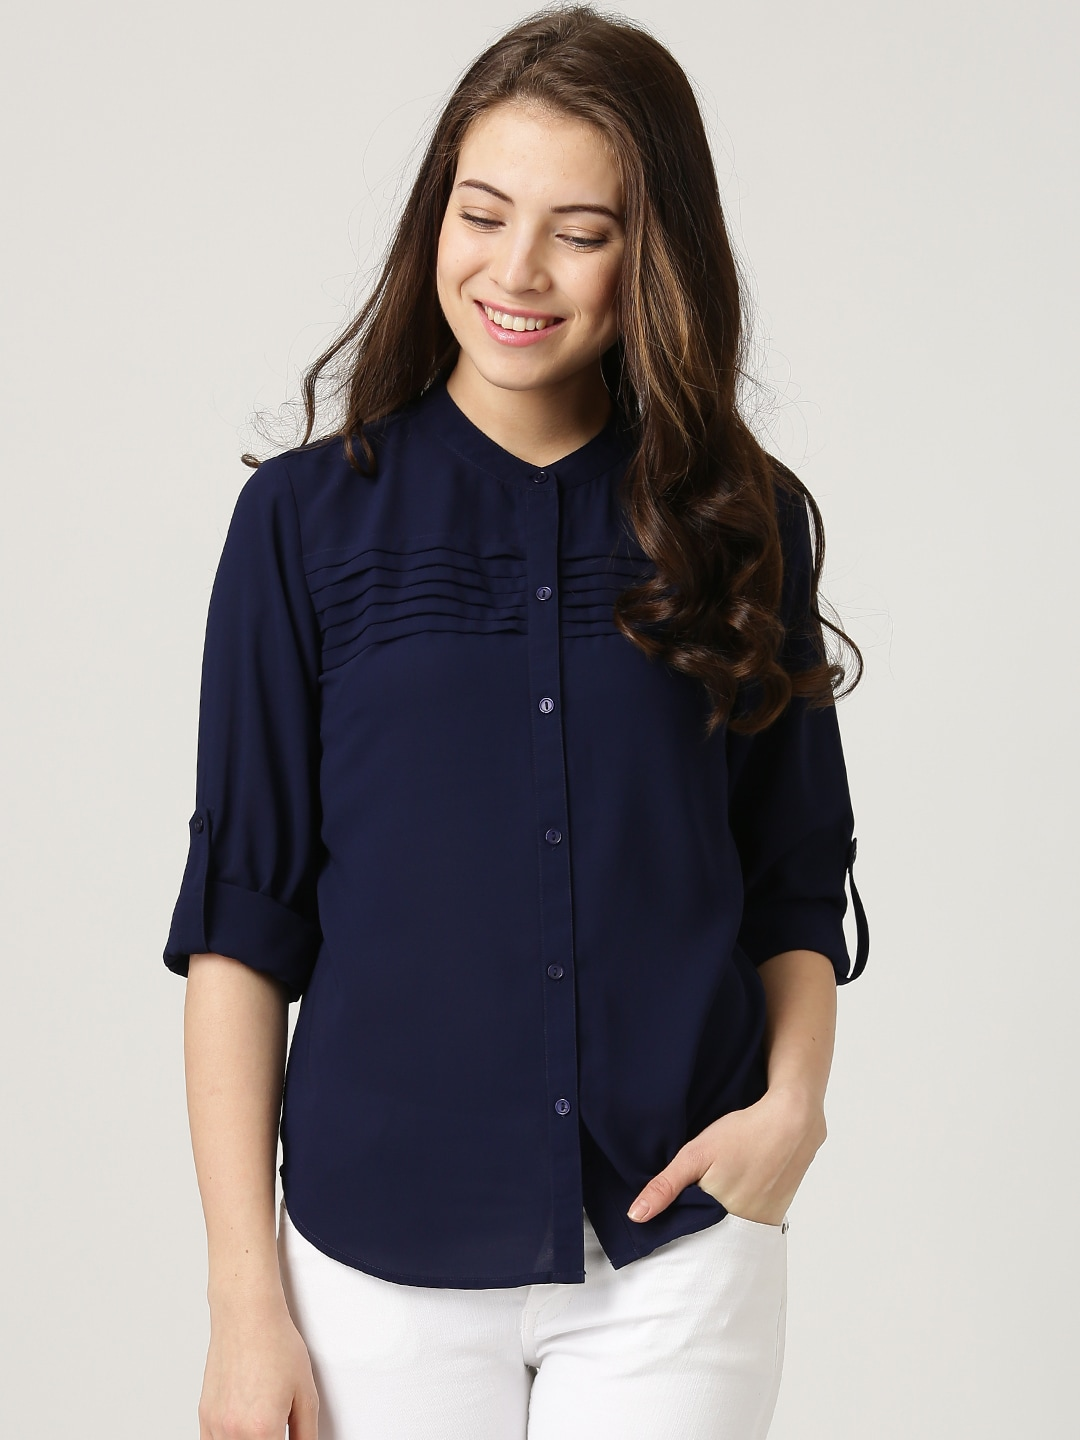 Buy Shirt Casual for ladies picture trends